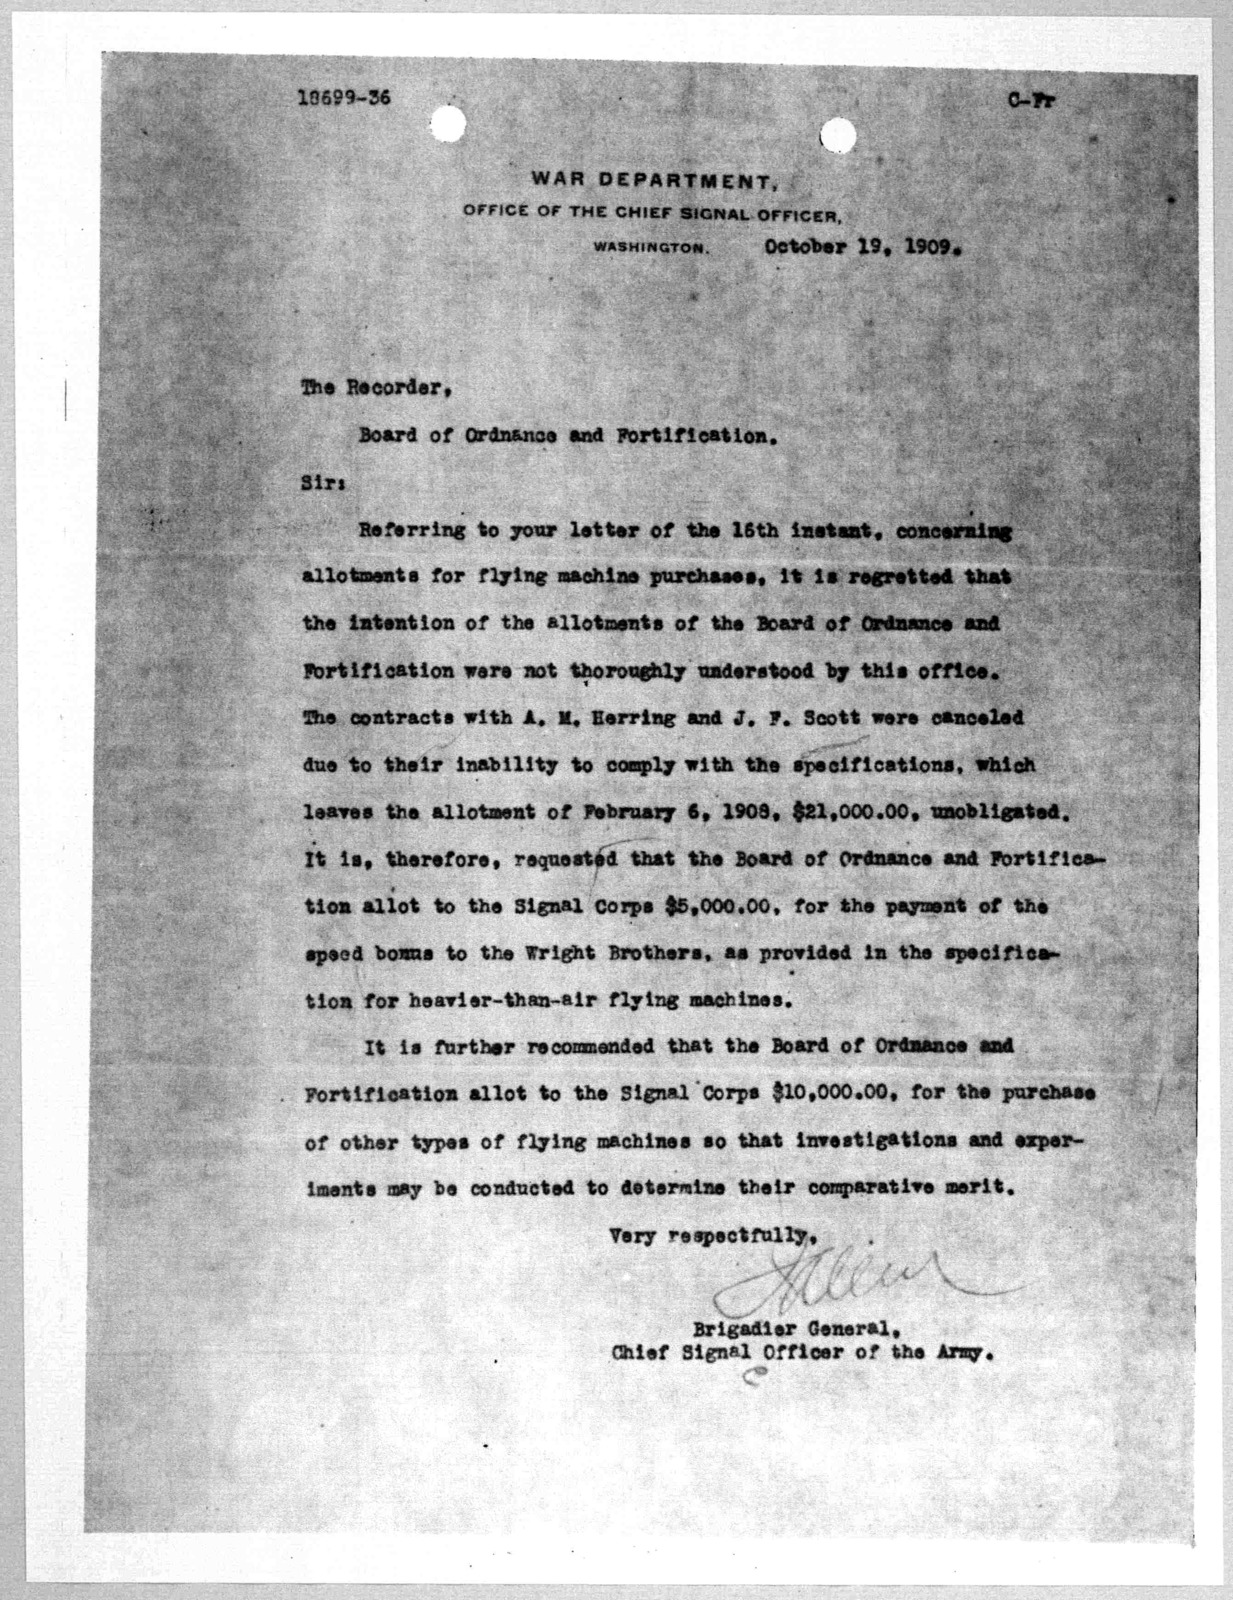 Subject File:  United States--War Department--Army Signal Corps--Correspondence, 1909-1911